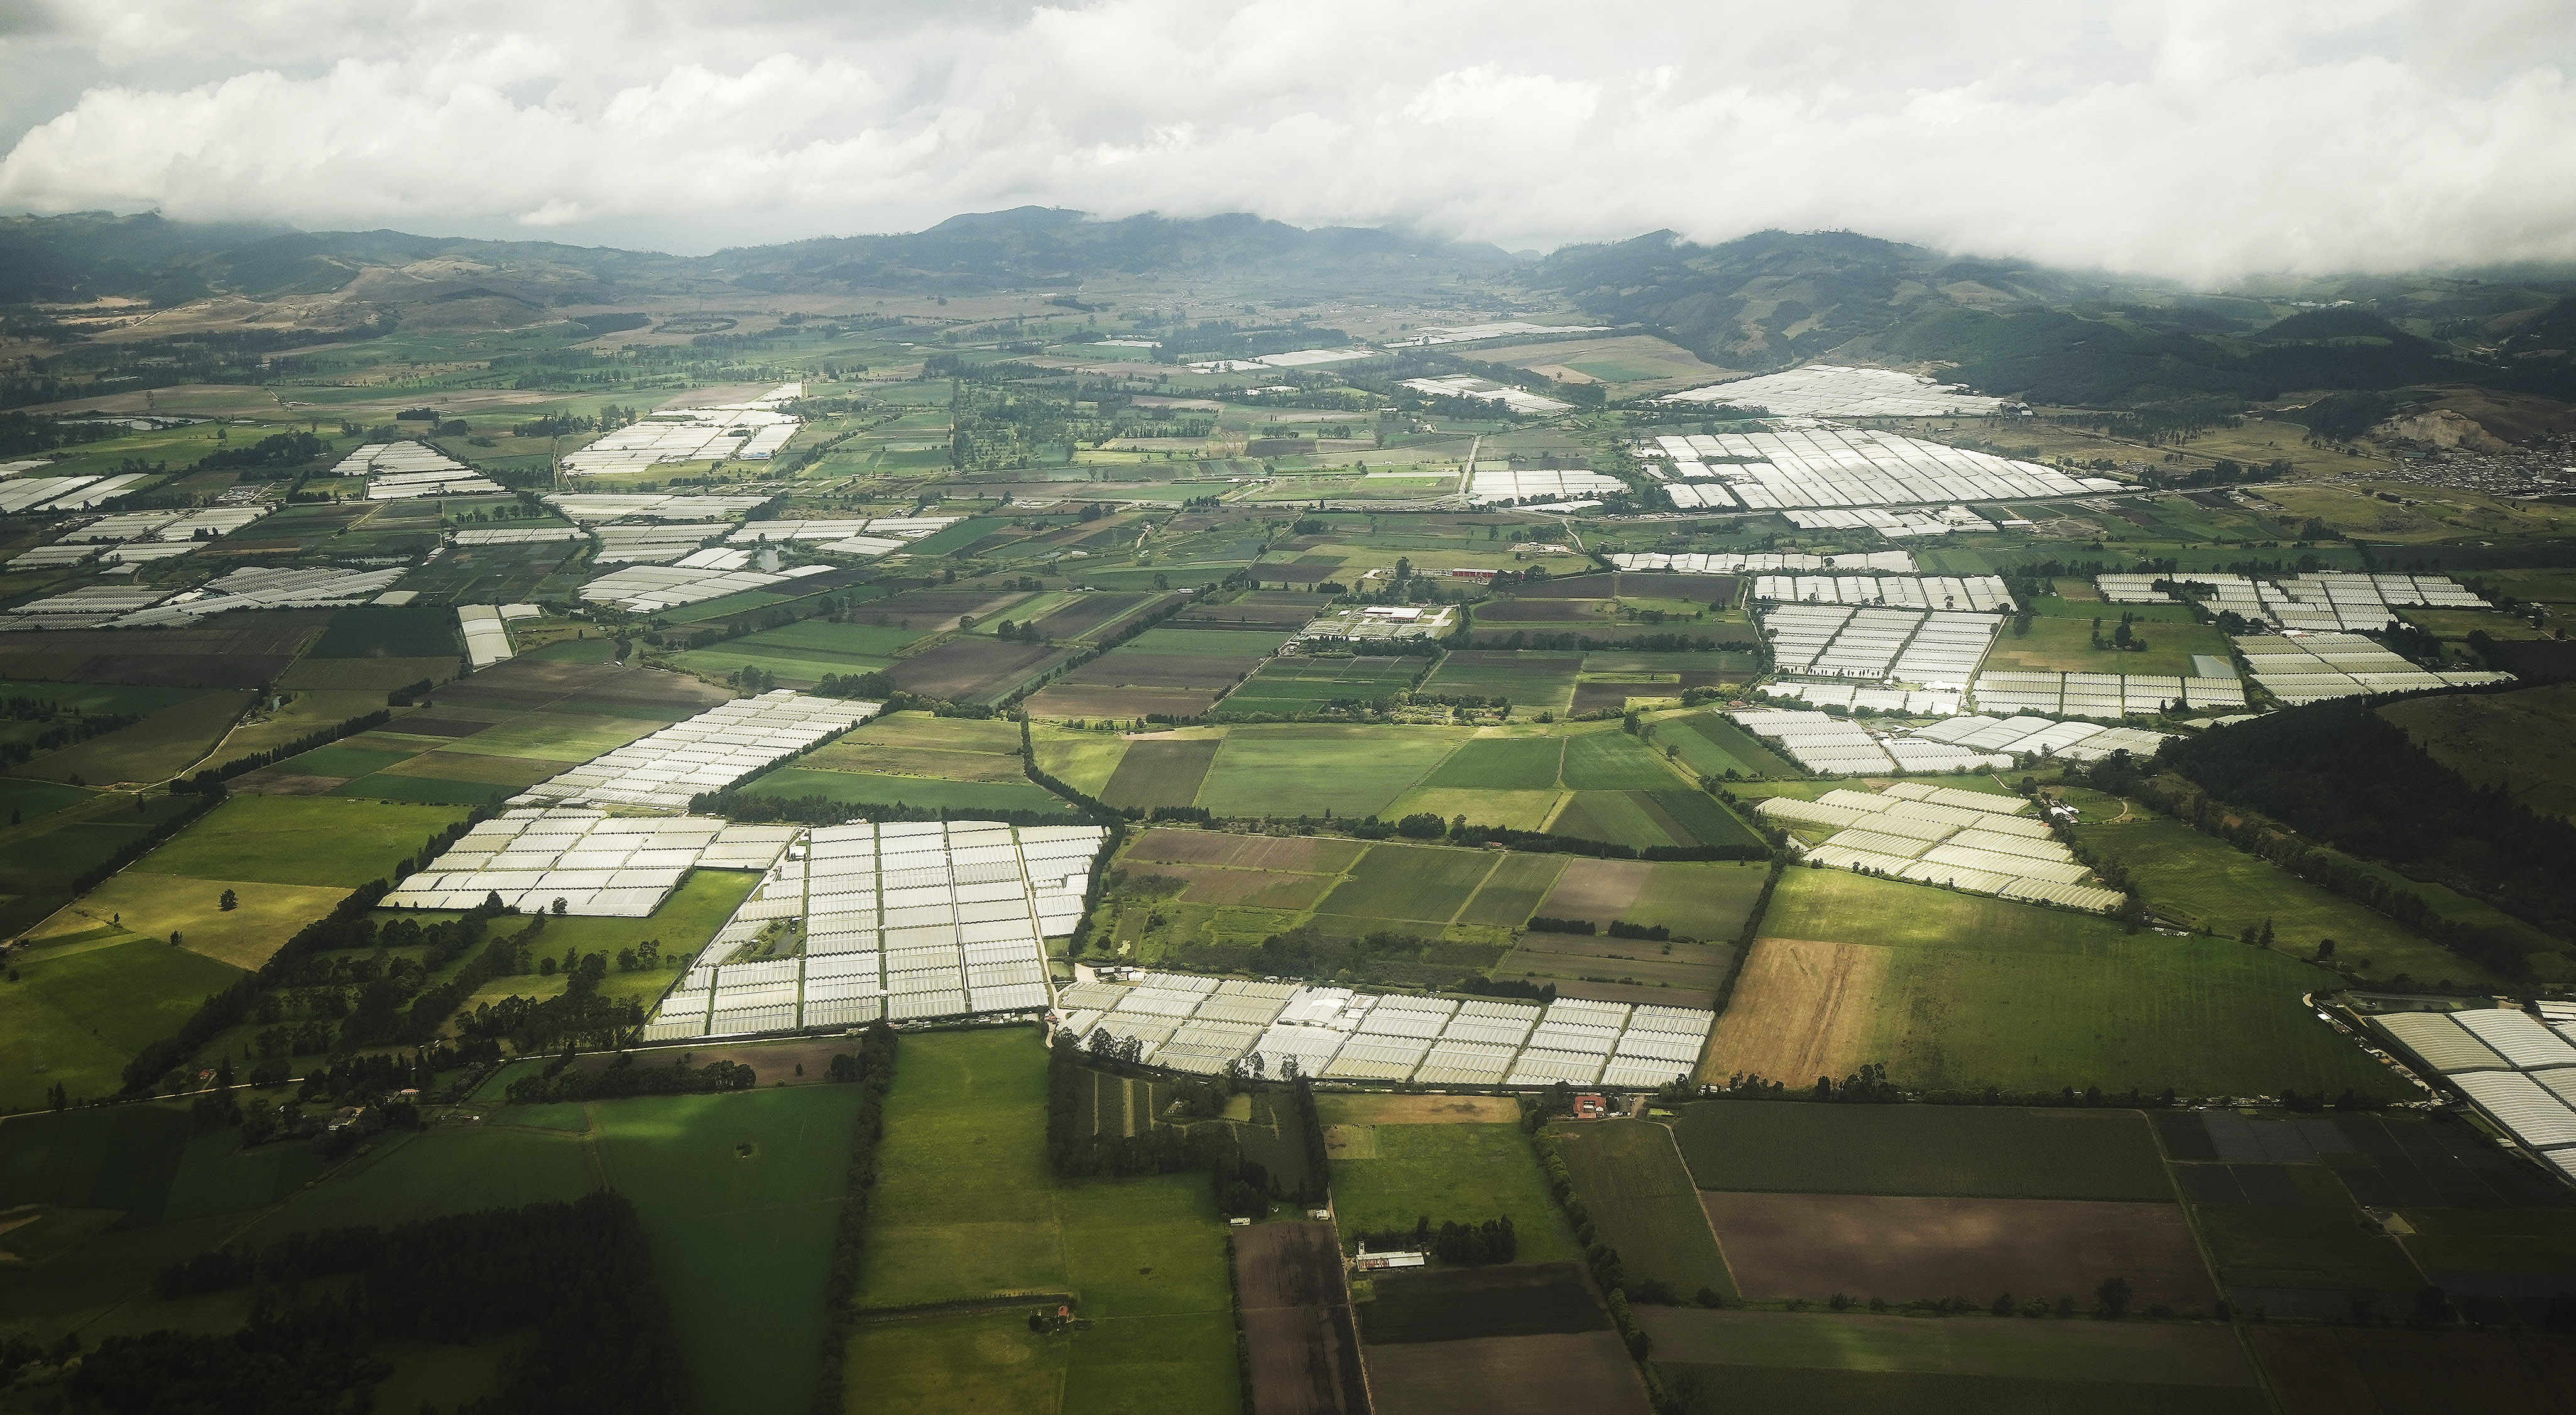 Numerous greenhouses line the horizon outside of Bogota, Colombia, on Sunday, Aug. 25, 2019. President Russell M. Nelson of The Church of Jesus Christ of Latter-day Saints spoke in a devotional in the city.